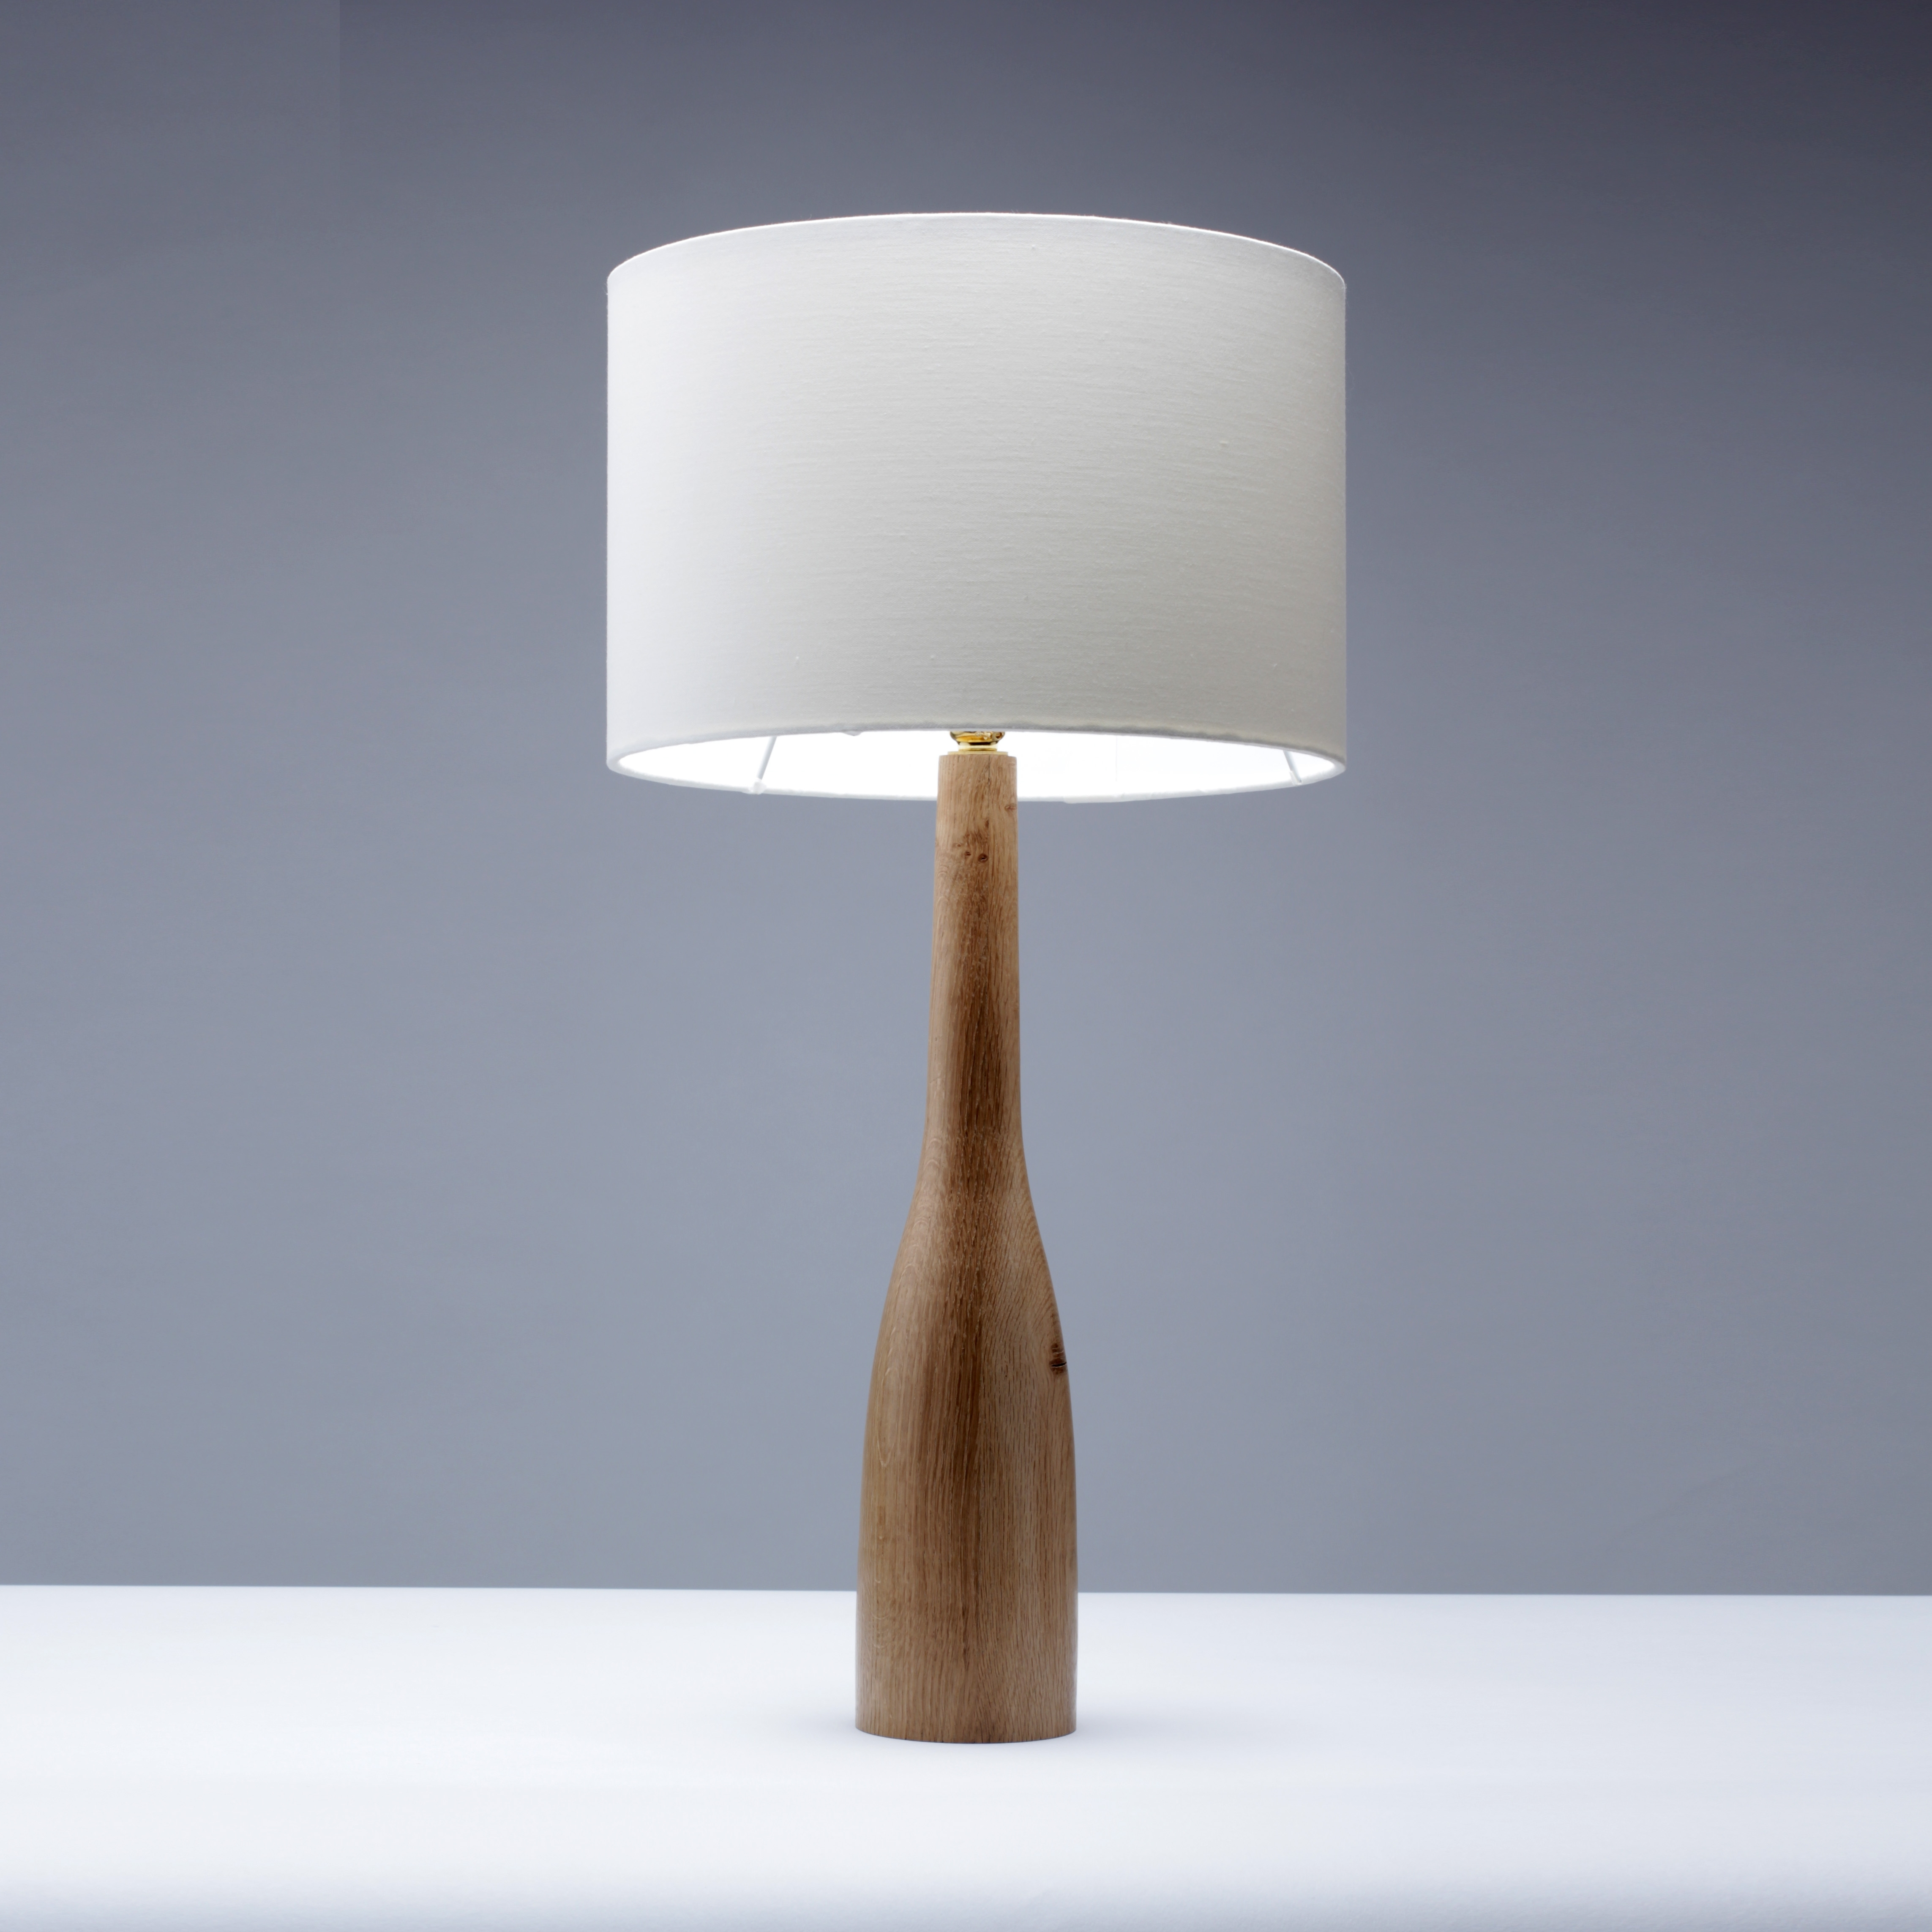 Handmade Wooden Table Lamps Floor Kitchenware – Home Art Decor | #86454 Throughout Wood Table Lamps For Living Room (#5 of 15)